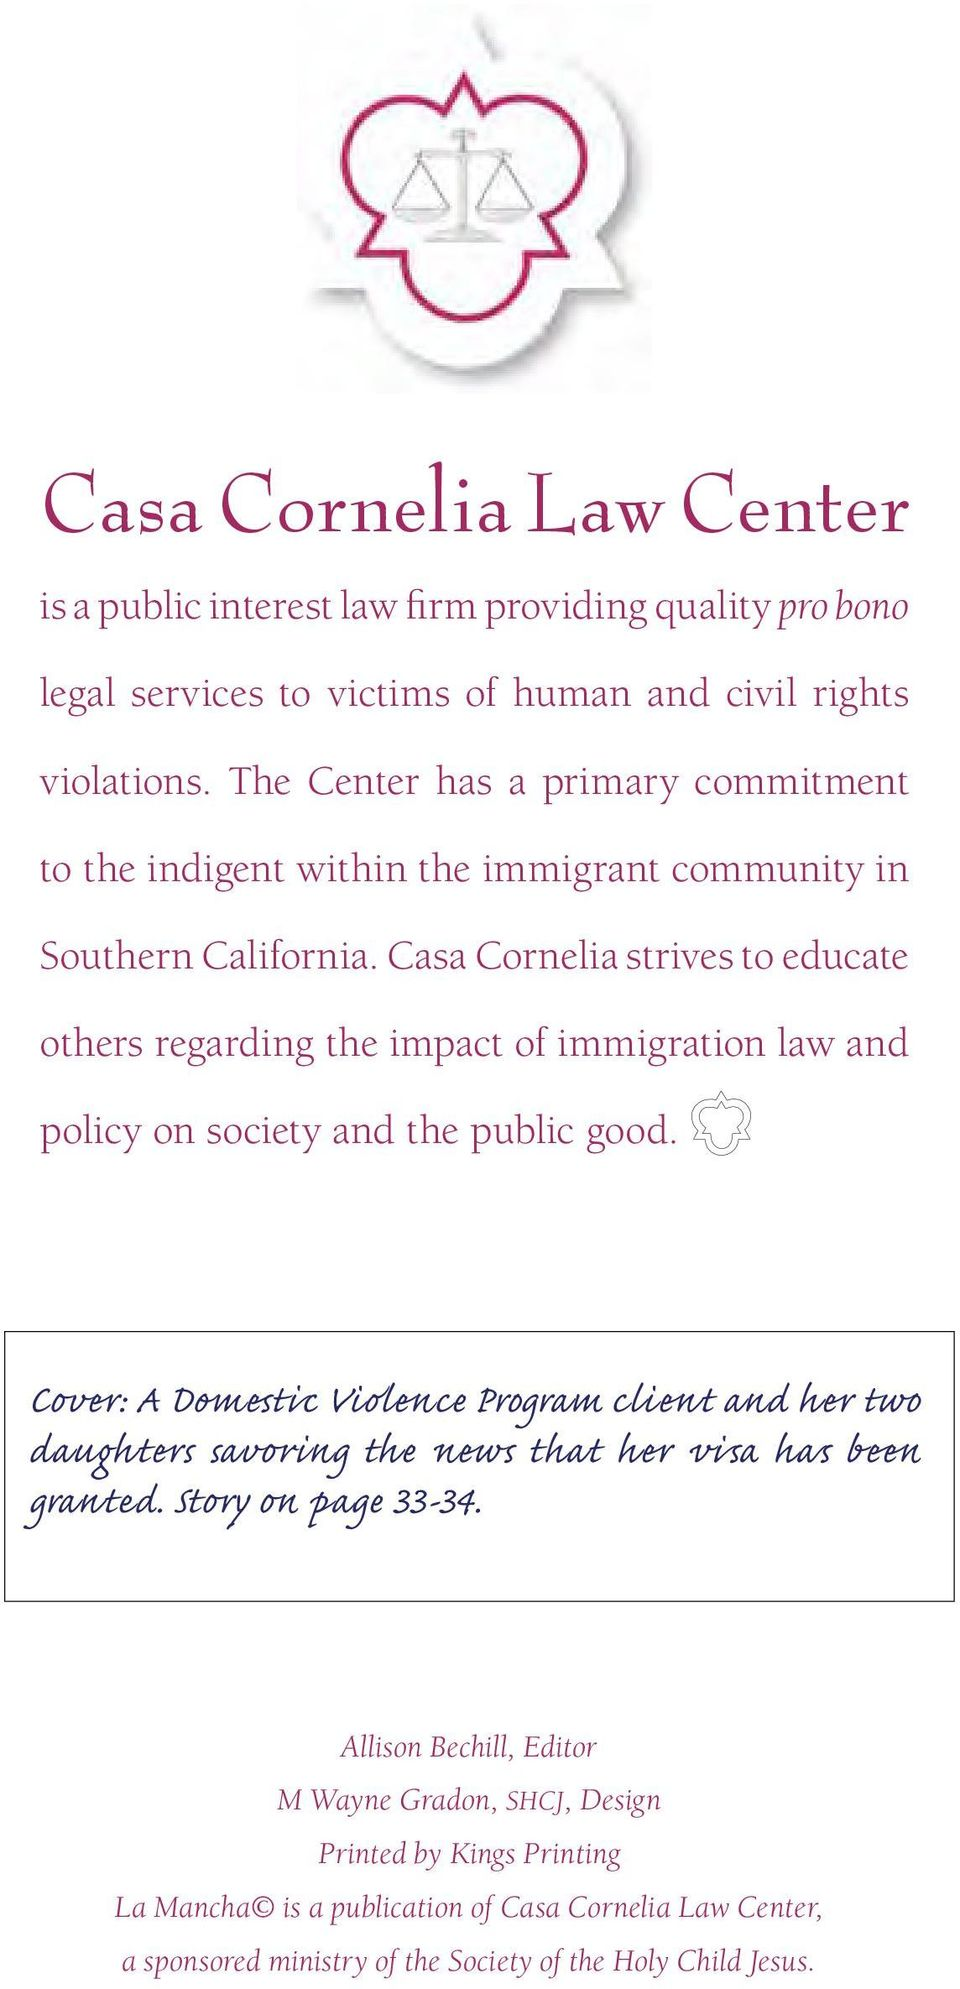 Casa Cornelia strives to educate others regarding the impact of immigration law and policy on society and the public good.